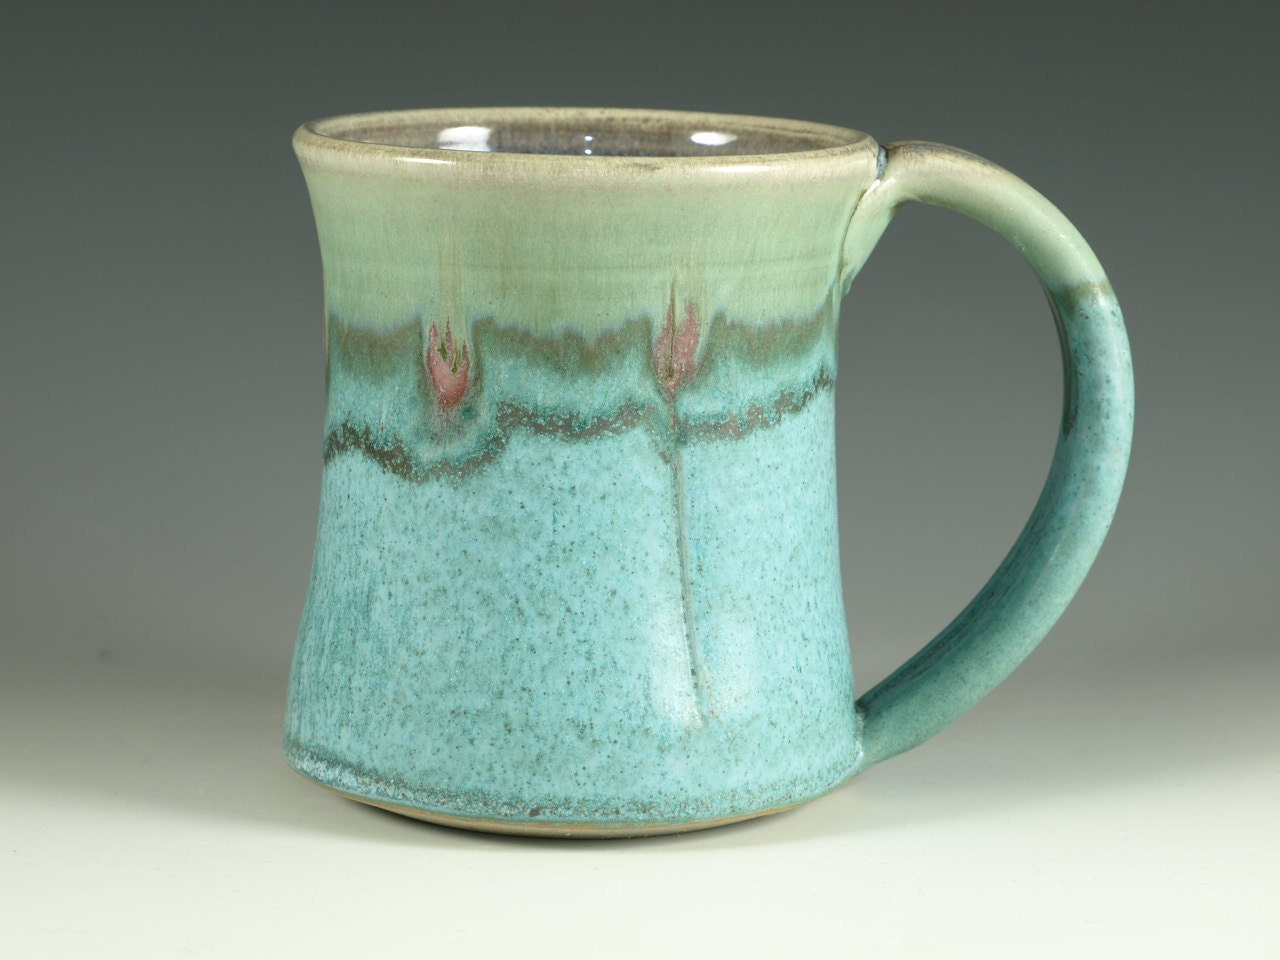 Large Coffee Mug Large Handle Turquoise Stoneware 20oz